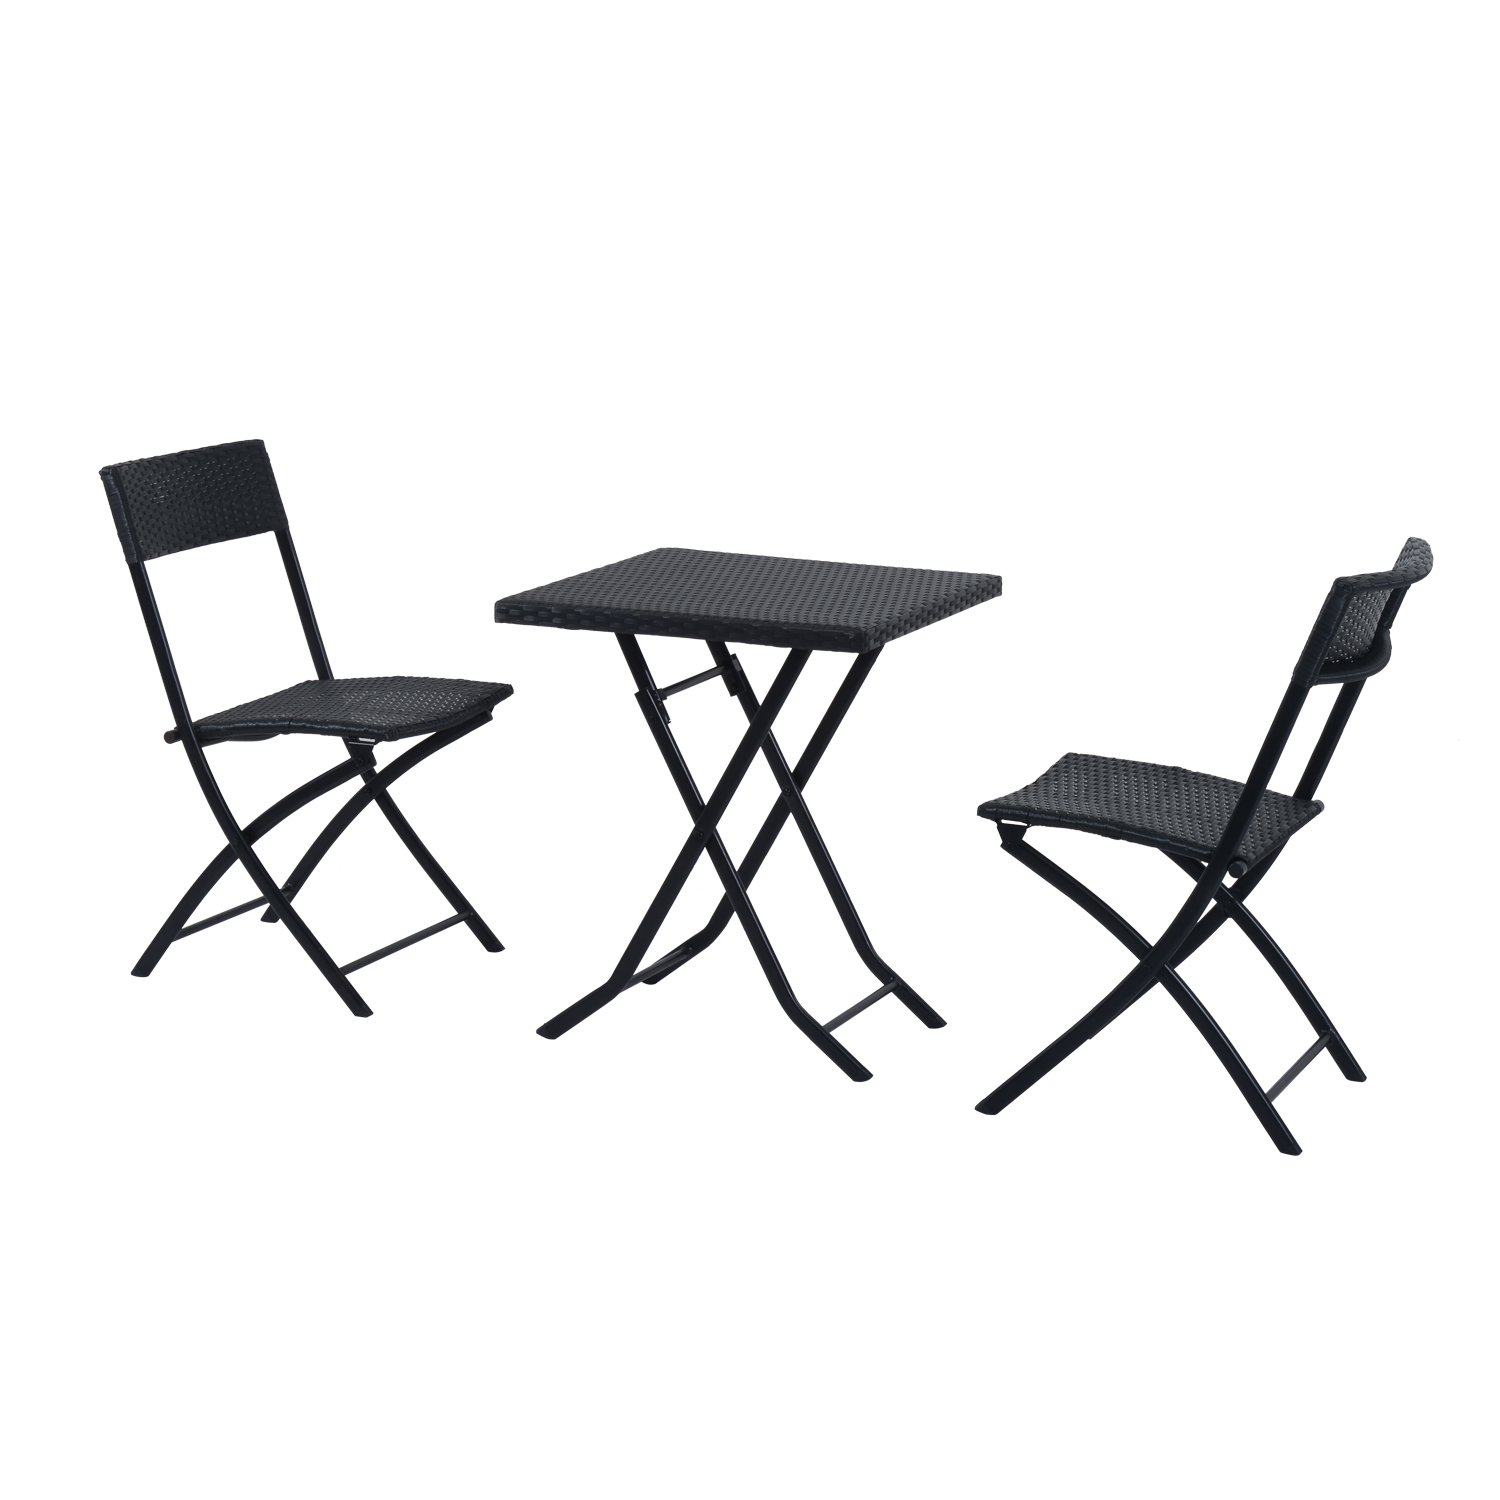 outsunny gartenm bel set aus polyrattan mit tisch und st hlen 3 teilig schwarz jetzt bestellen. Black Bedroom Furniture Sets. Home Design Ideas